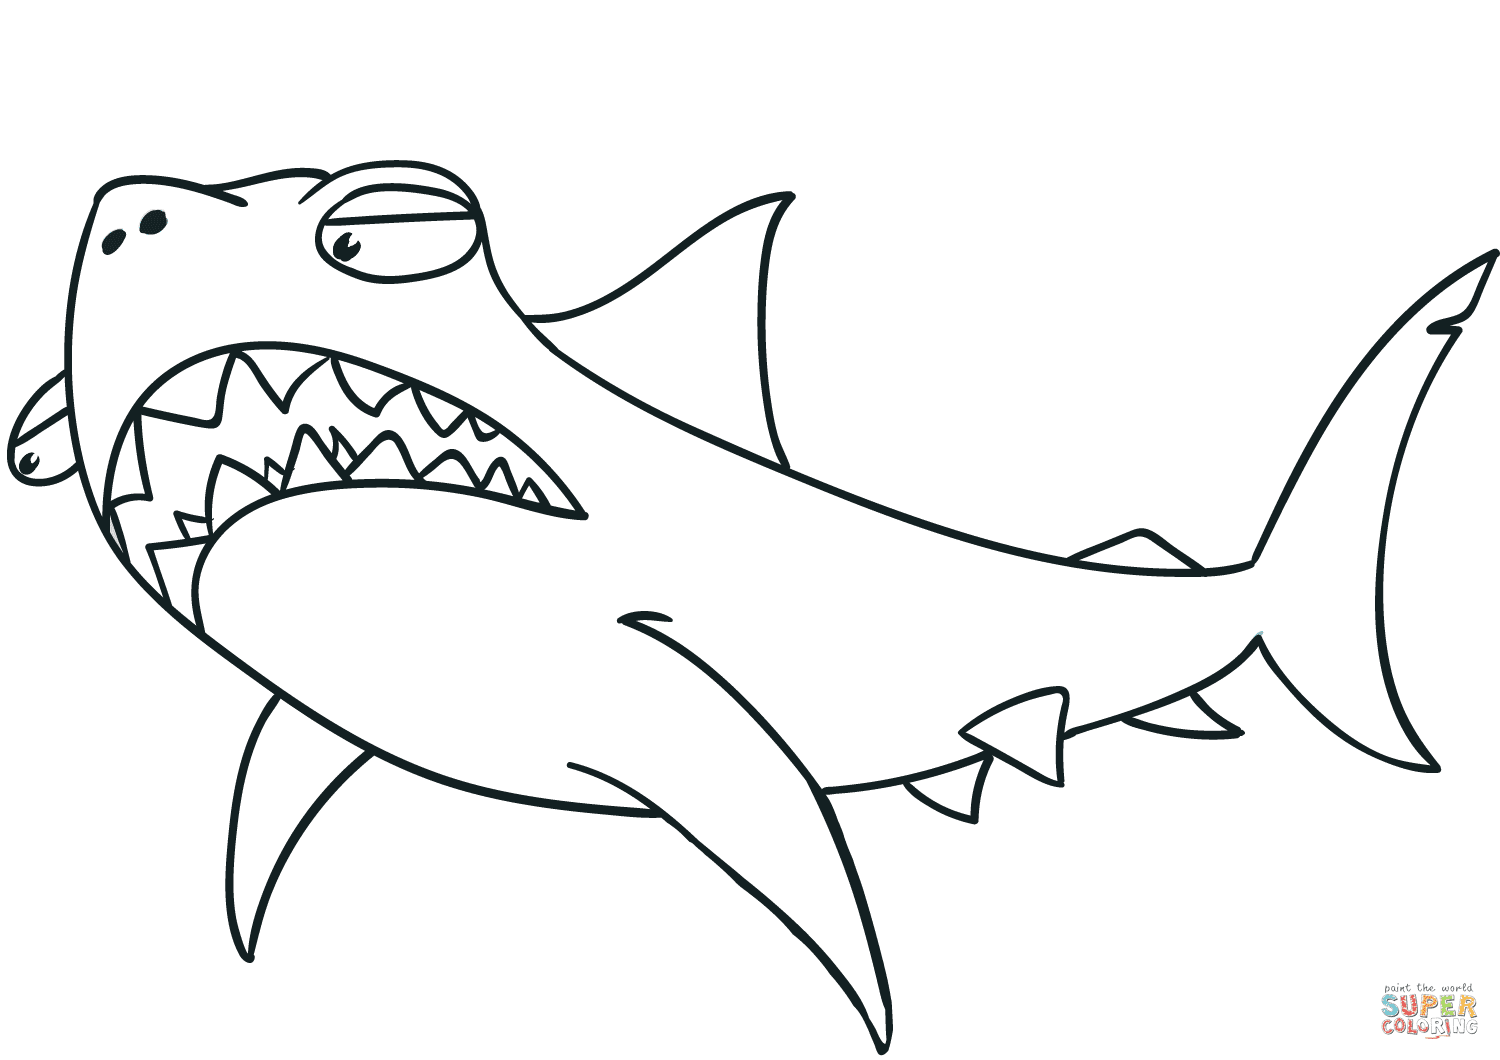 Cartoon Shark coloring page | Free Printable Coloring Pages